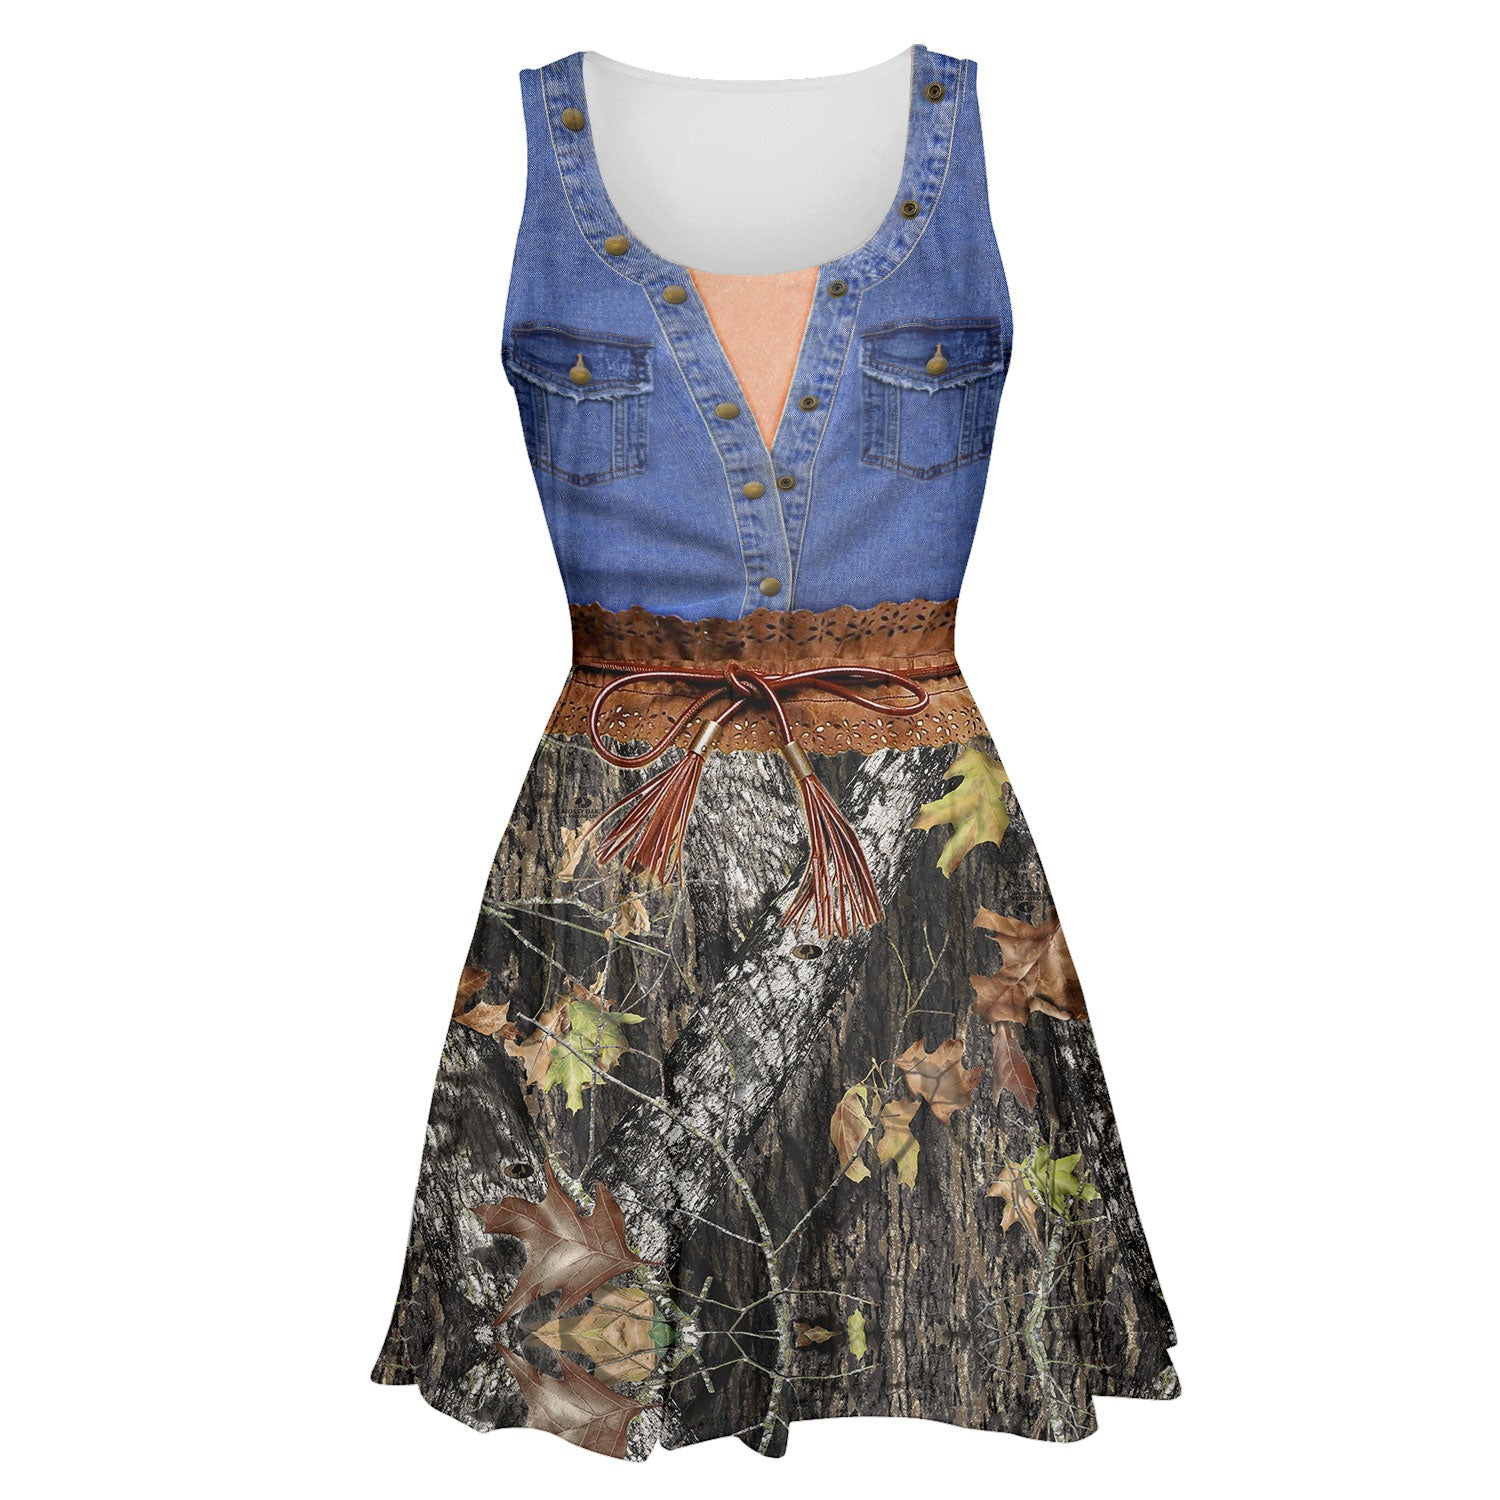 3D All Over Printed Skater Dress - Jean Mix Camo of Country Girl